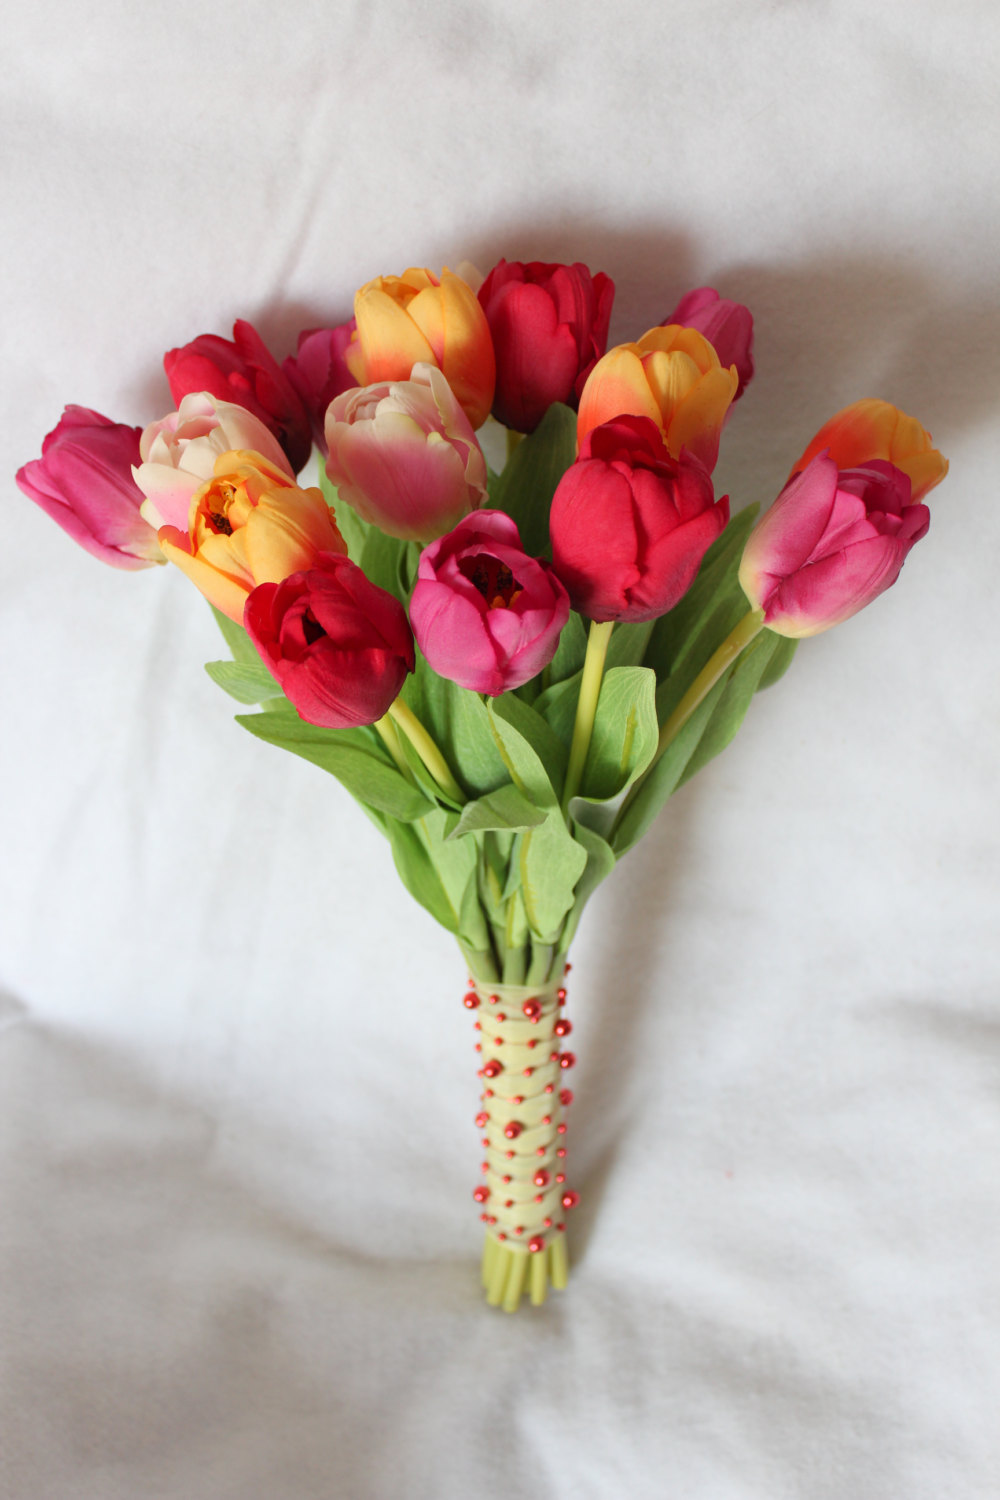 minneapolis-silk-florist-Fresh-Touch-Multi-Colored-Tulip-Bouquet-with-Matching-Boutonniere.jpg